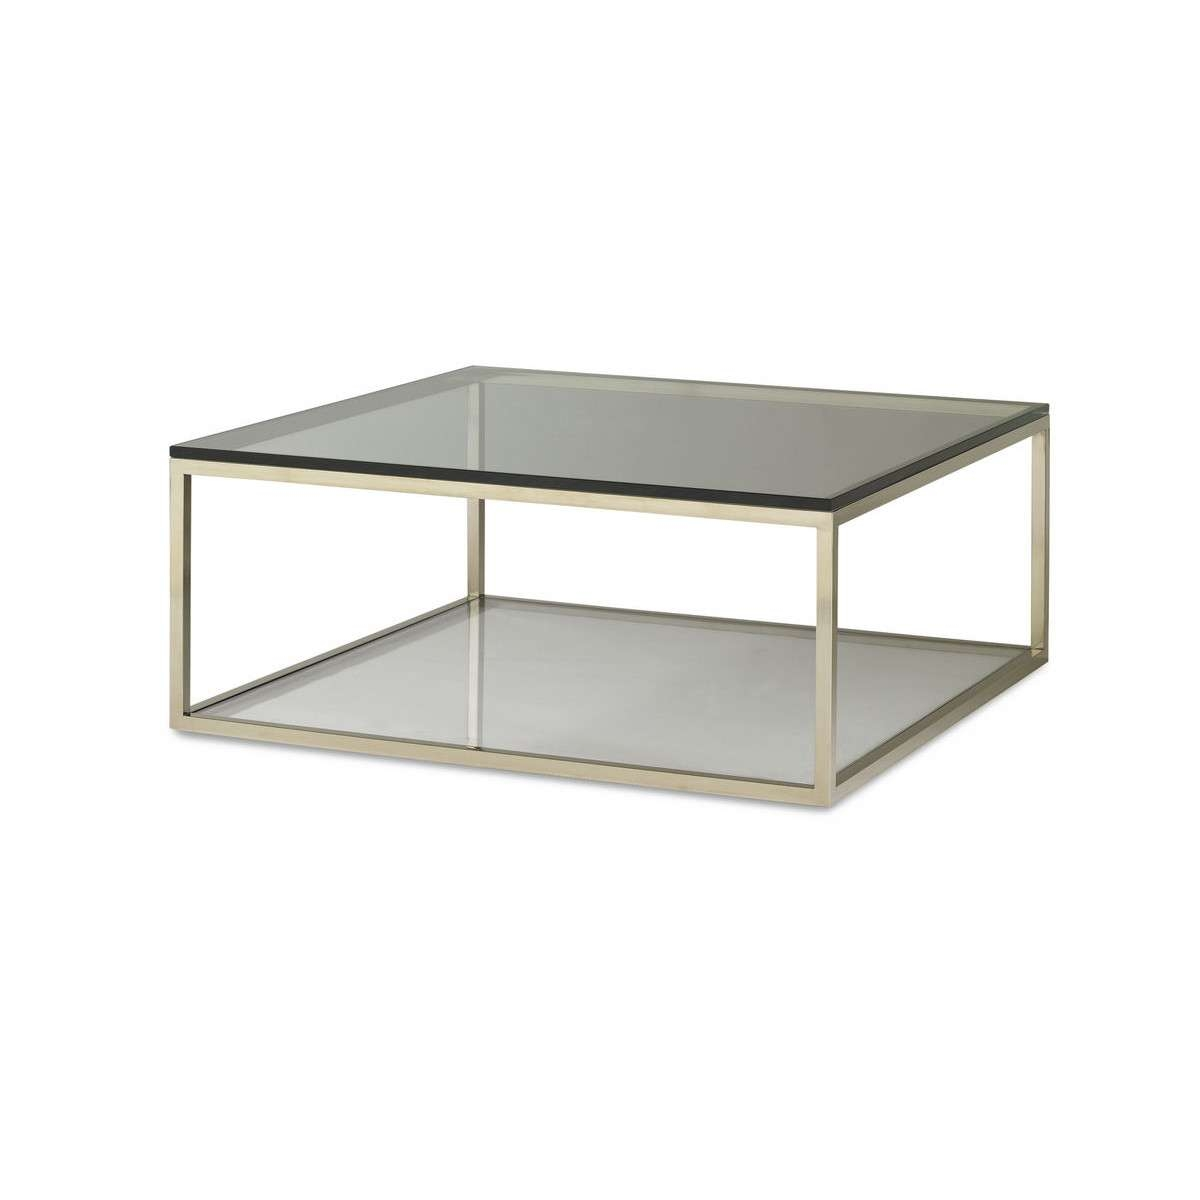 2017 Square Glass Coffee Tables Pertaining To Coffee Tables : Rummy Large Square Coffee Table Wood Reclaimed U (View 3 of 20)